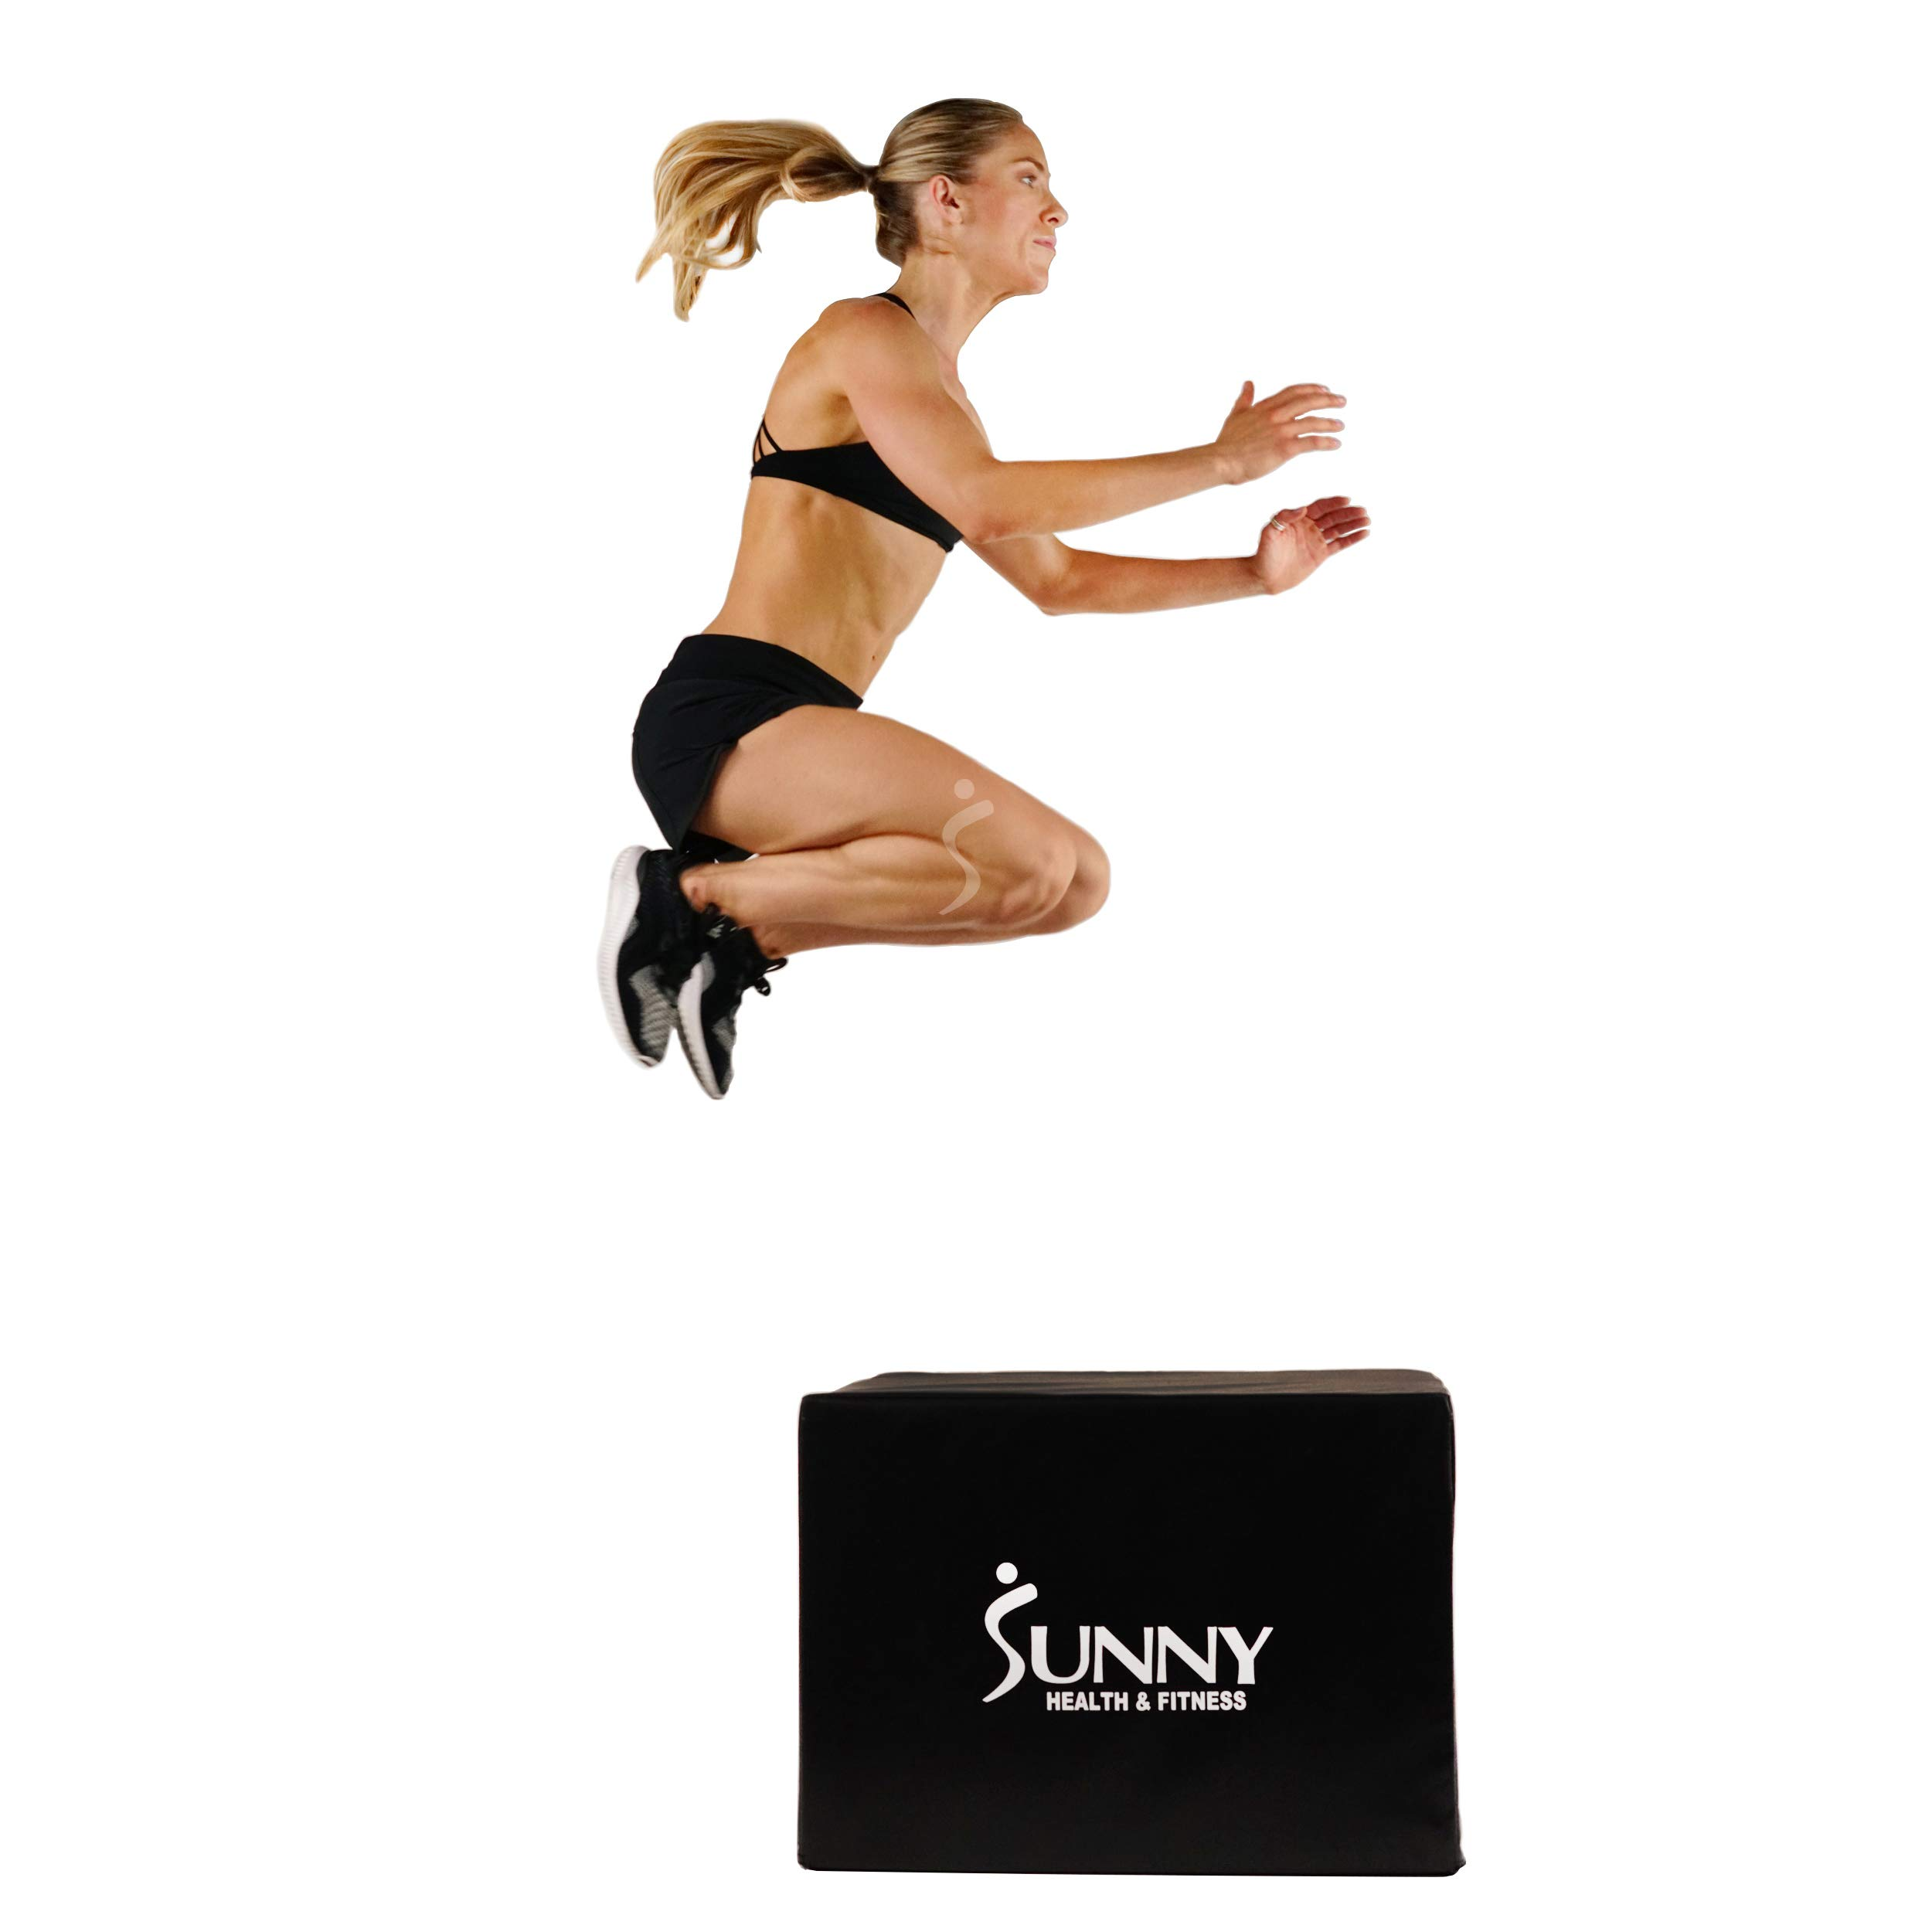 Sunny Health & Fitness Plyo Box Jump Platform with Adjustable Heights 20''/24''/28'' and Shock Absorbing Foam Cover, 3-in-1 Plyometric Jump Box -    No. 072 by Sunny Health & Fitness